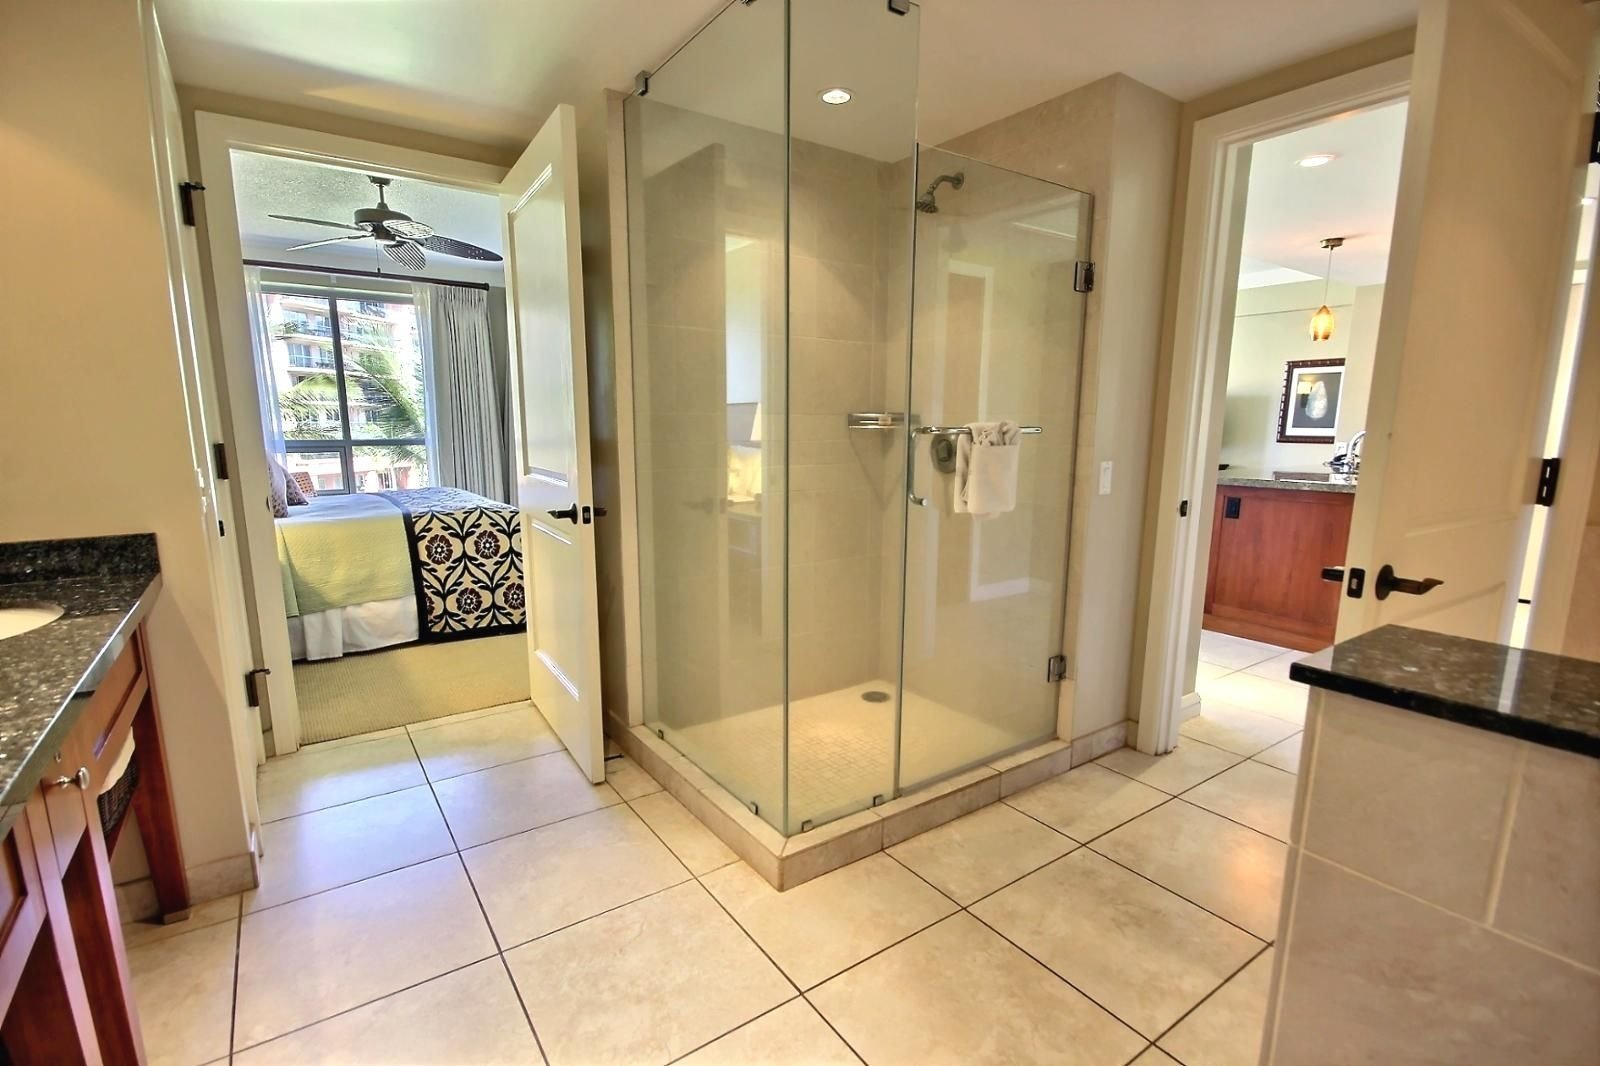 10 Most Recommended Jack And Jill Bathroom Ideas large master bathroom with jack jill entrance doors home